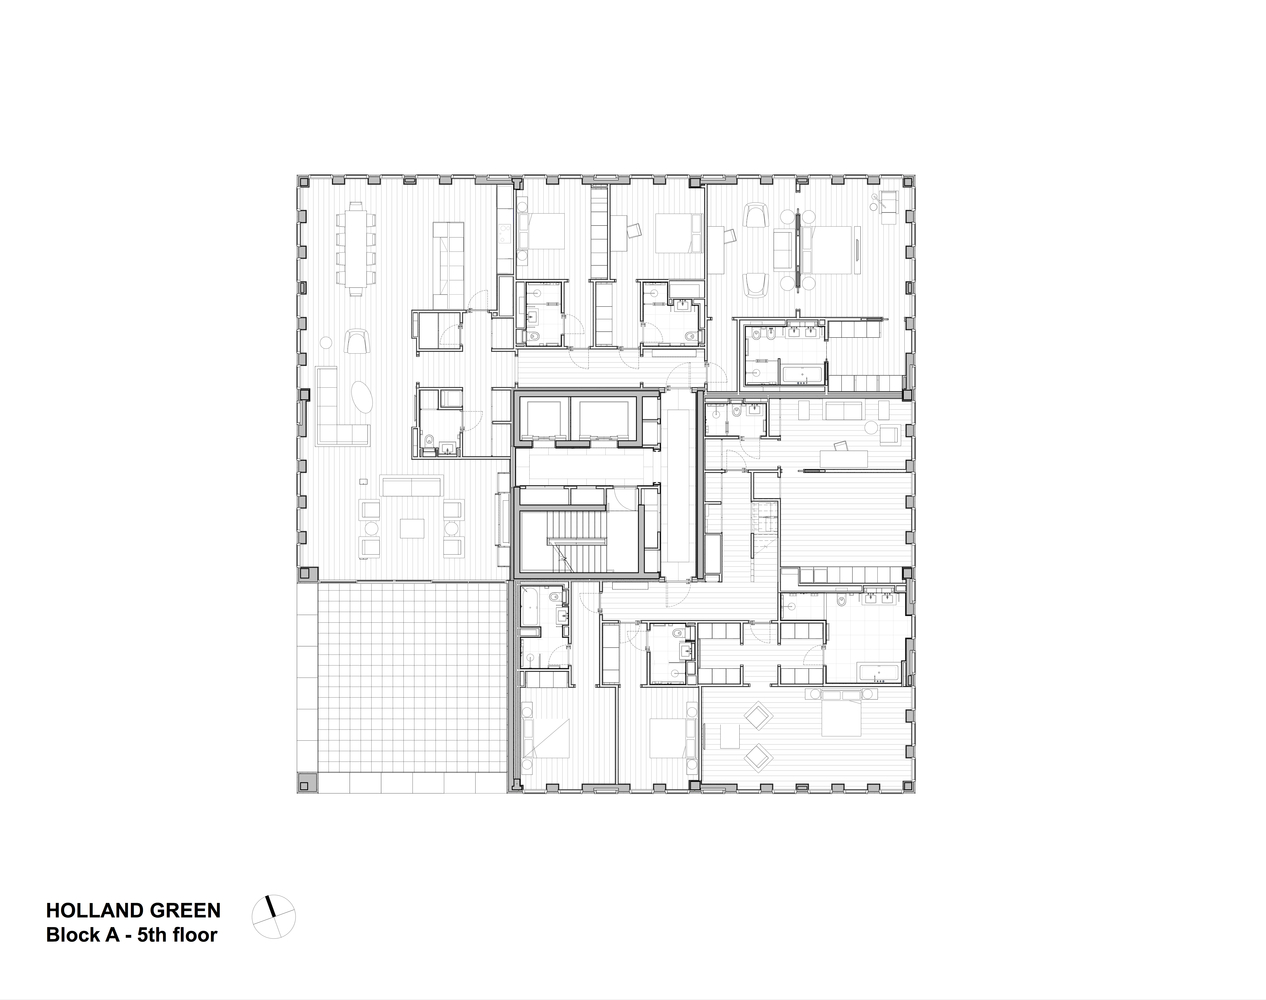 Green Floor Plans   Gallery Of Holland Green Oma Allies Morrison 30